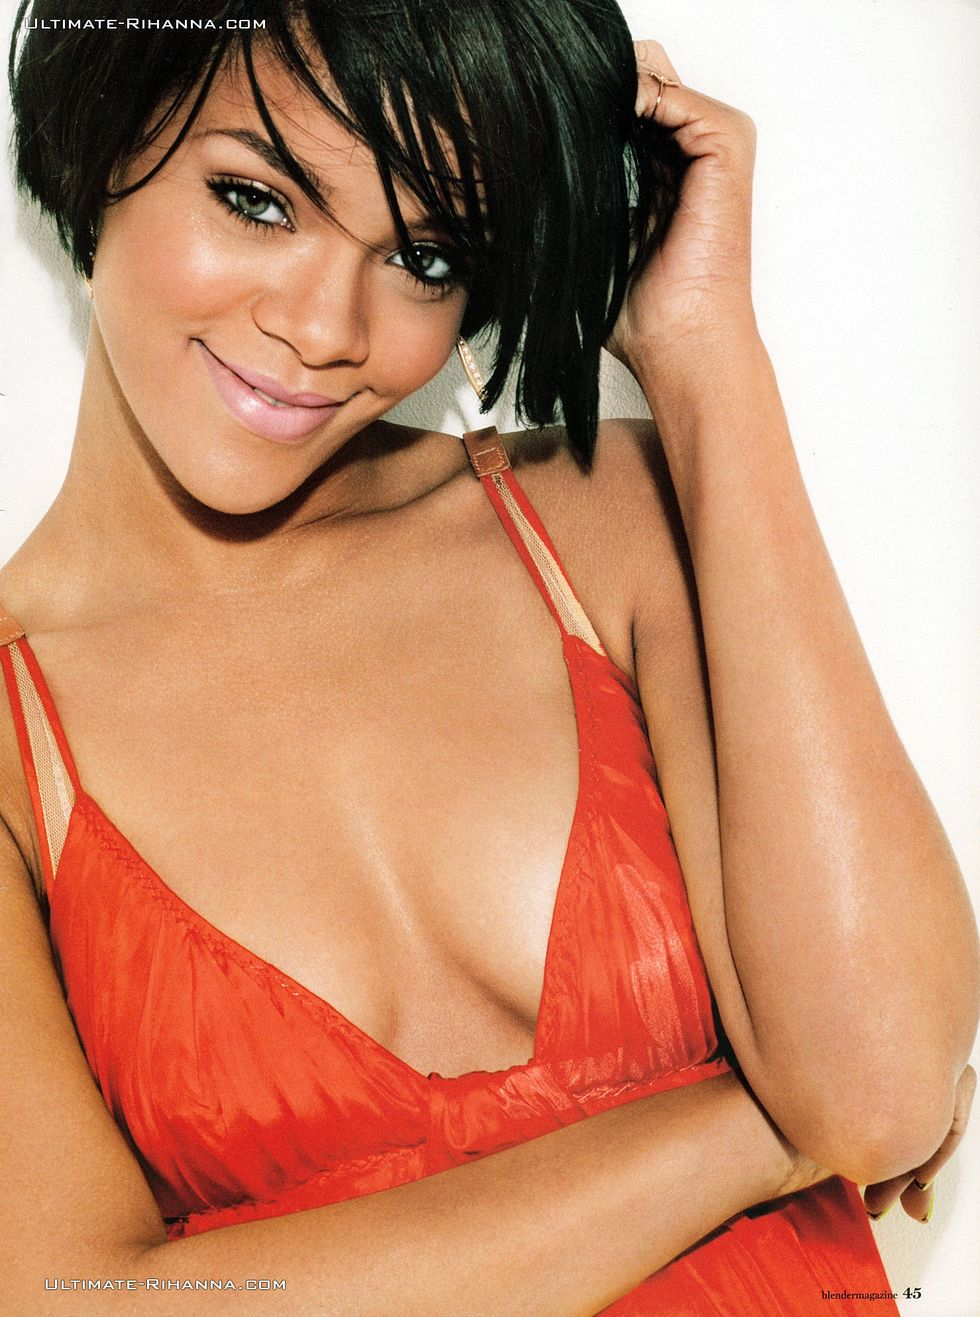 rihanna-blender-magazine-india-september-2008-01